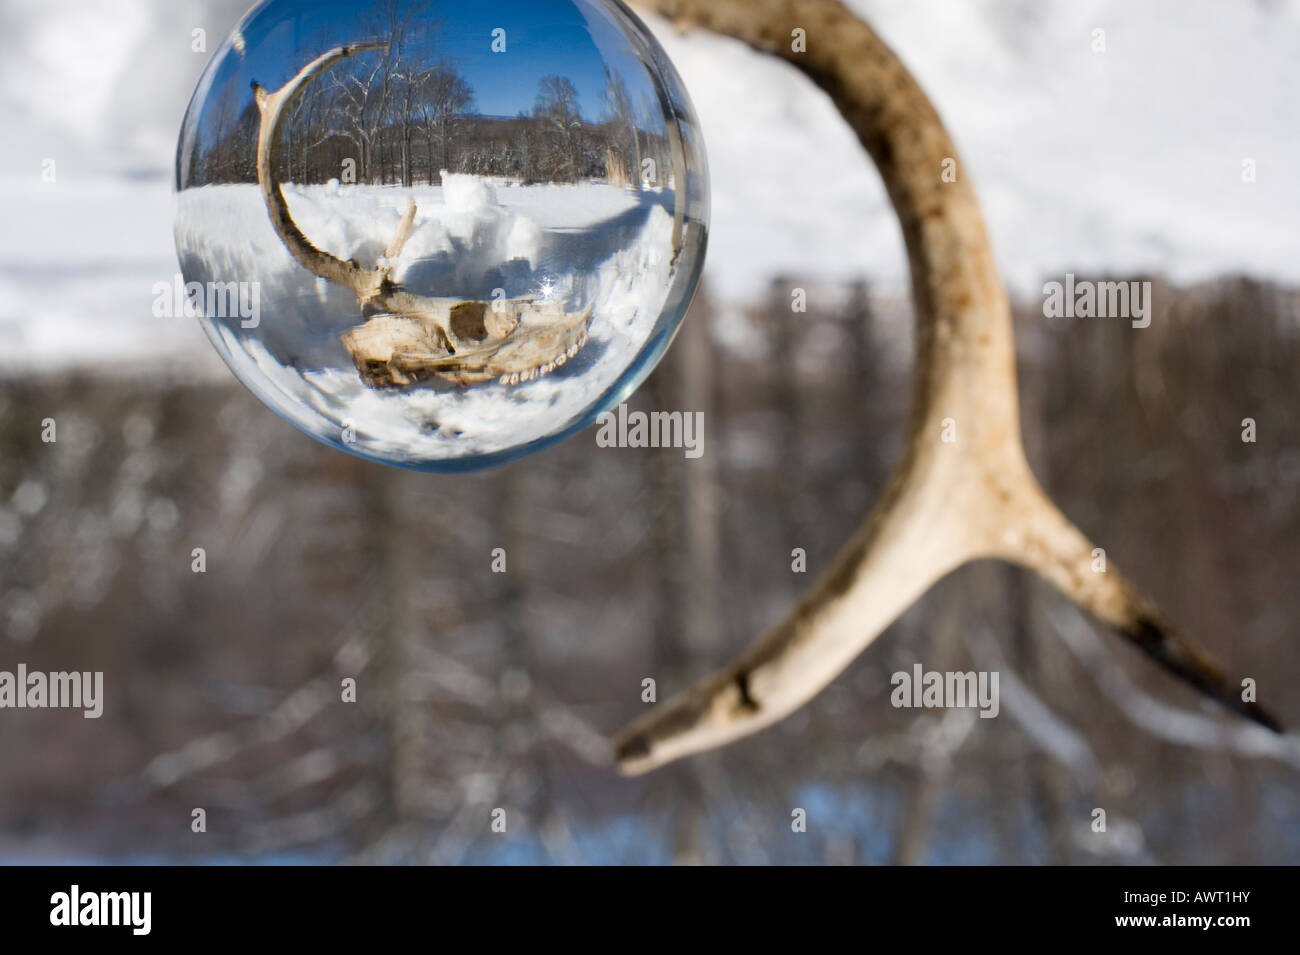 A glass globe refracts light capturing and reversing the image of a deer skull in winter landscape as an antler - Stock Image